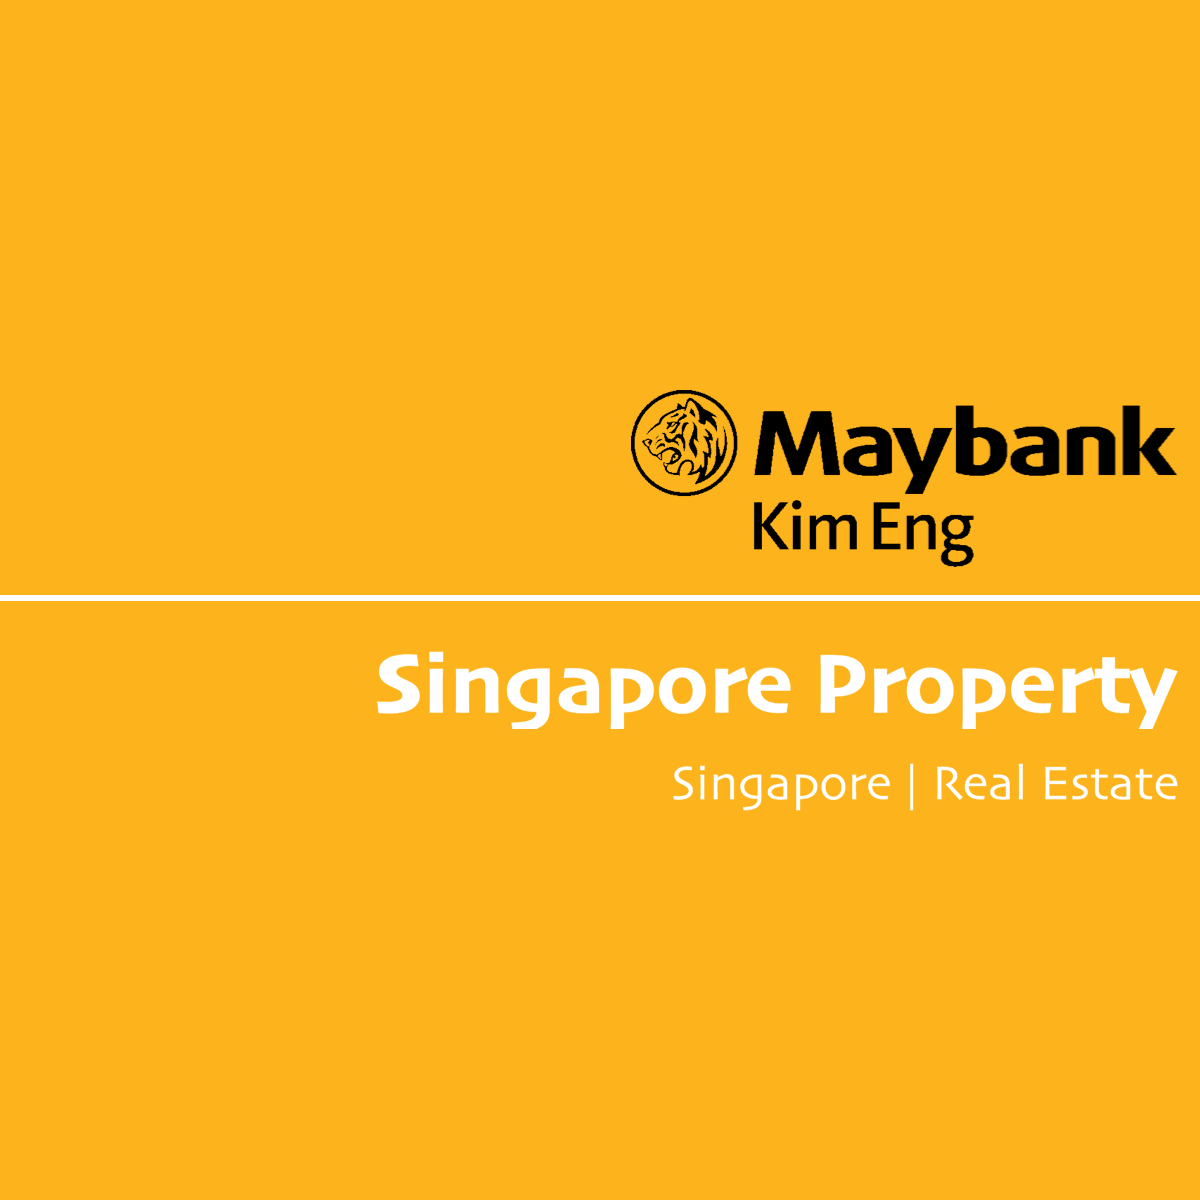 Singapore Property - Maybank Kim Eng 2018-02-19: Higher Buyer's Stamp Duty (BSD) A Small Dampener